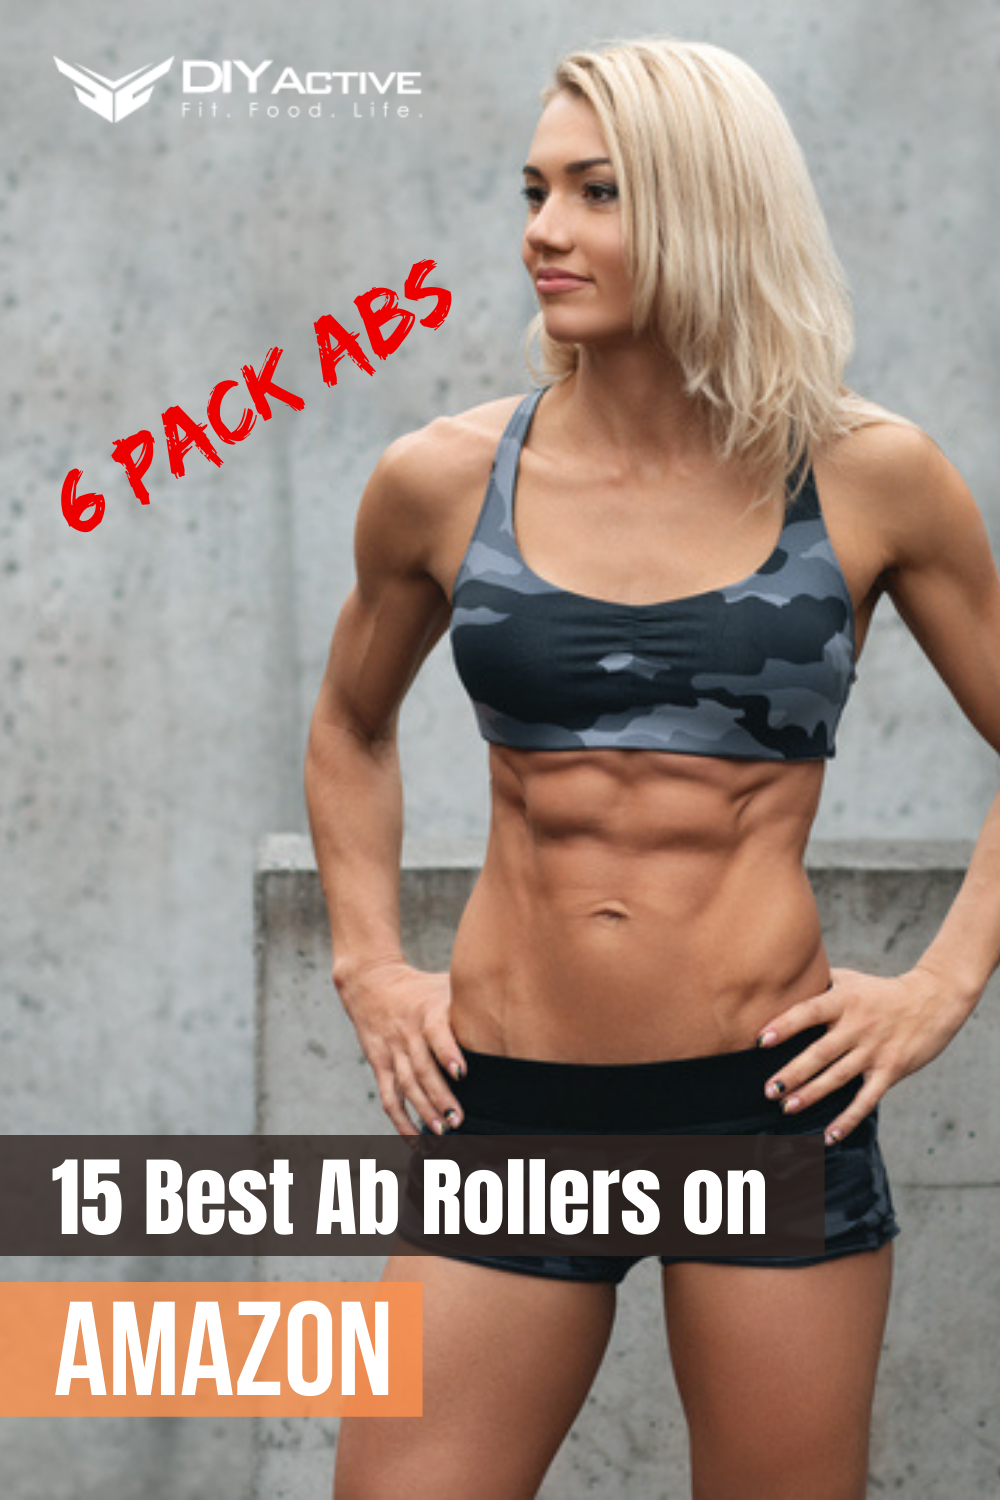 15 Best Ab Rollers on Amazon